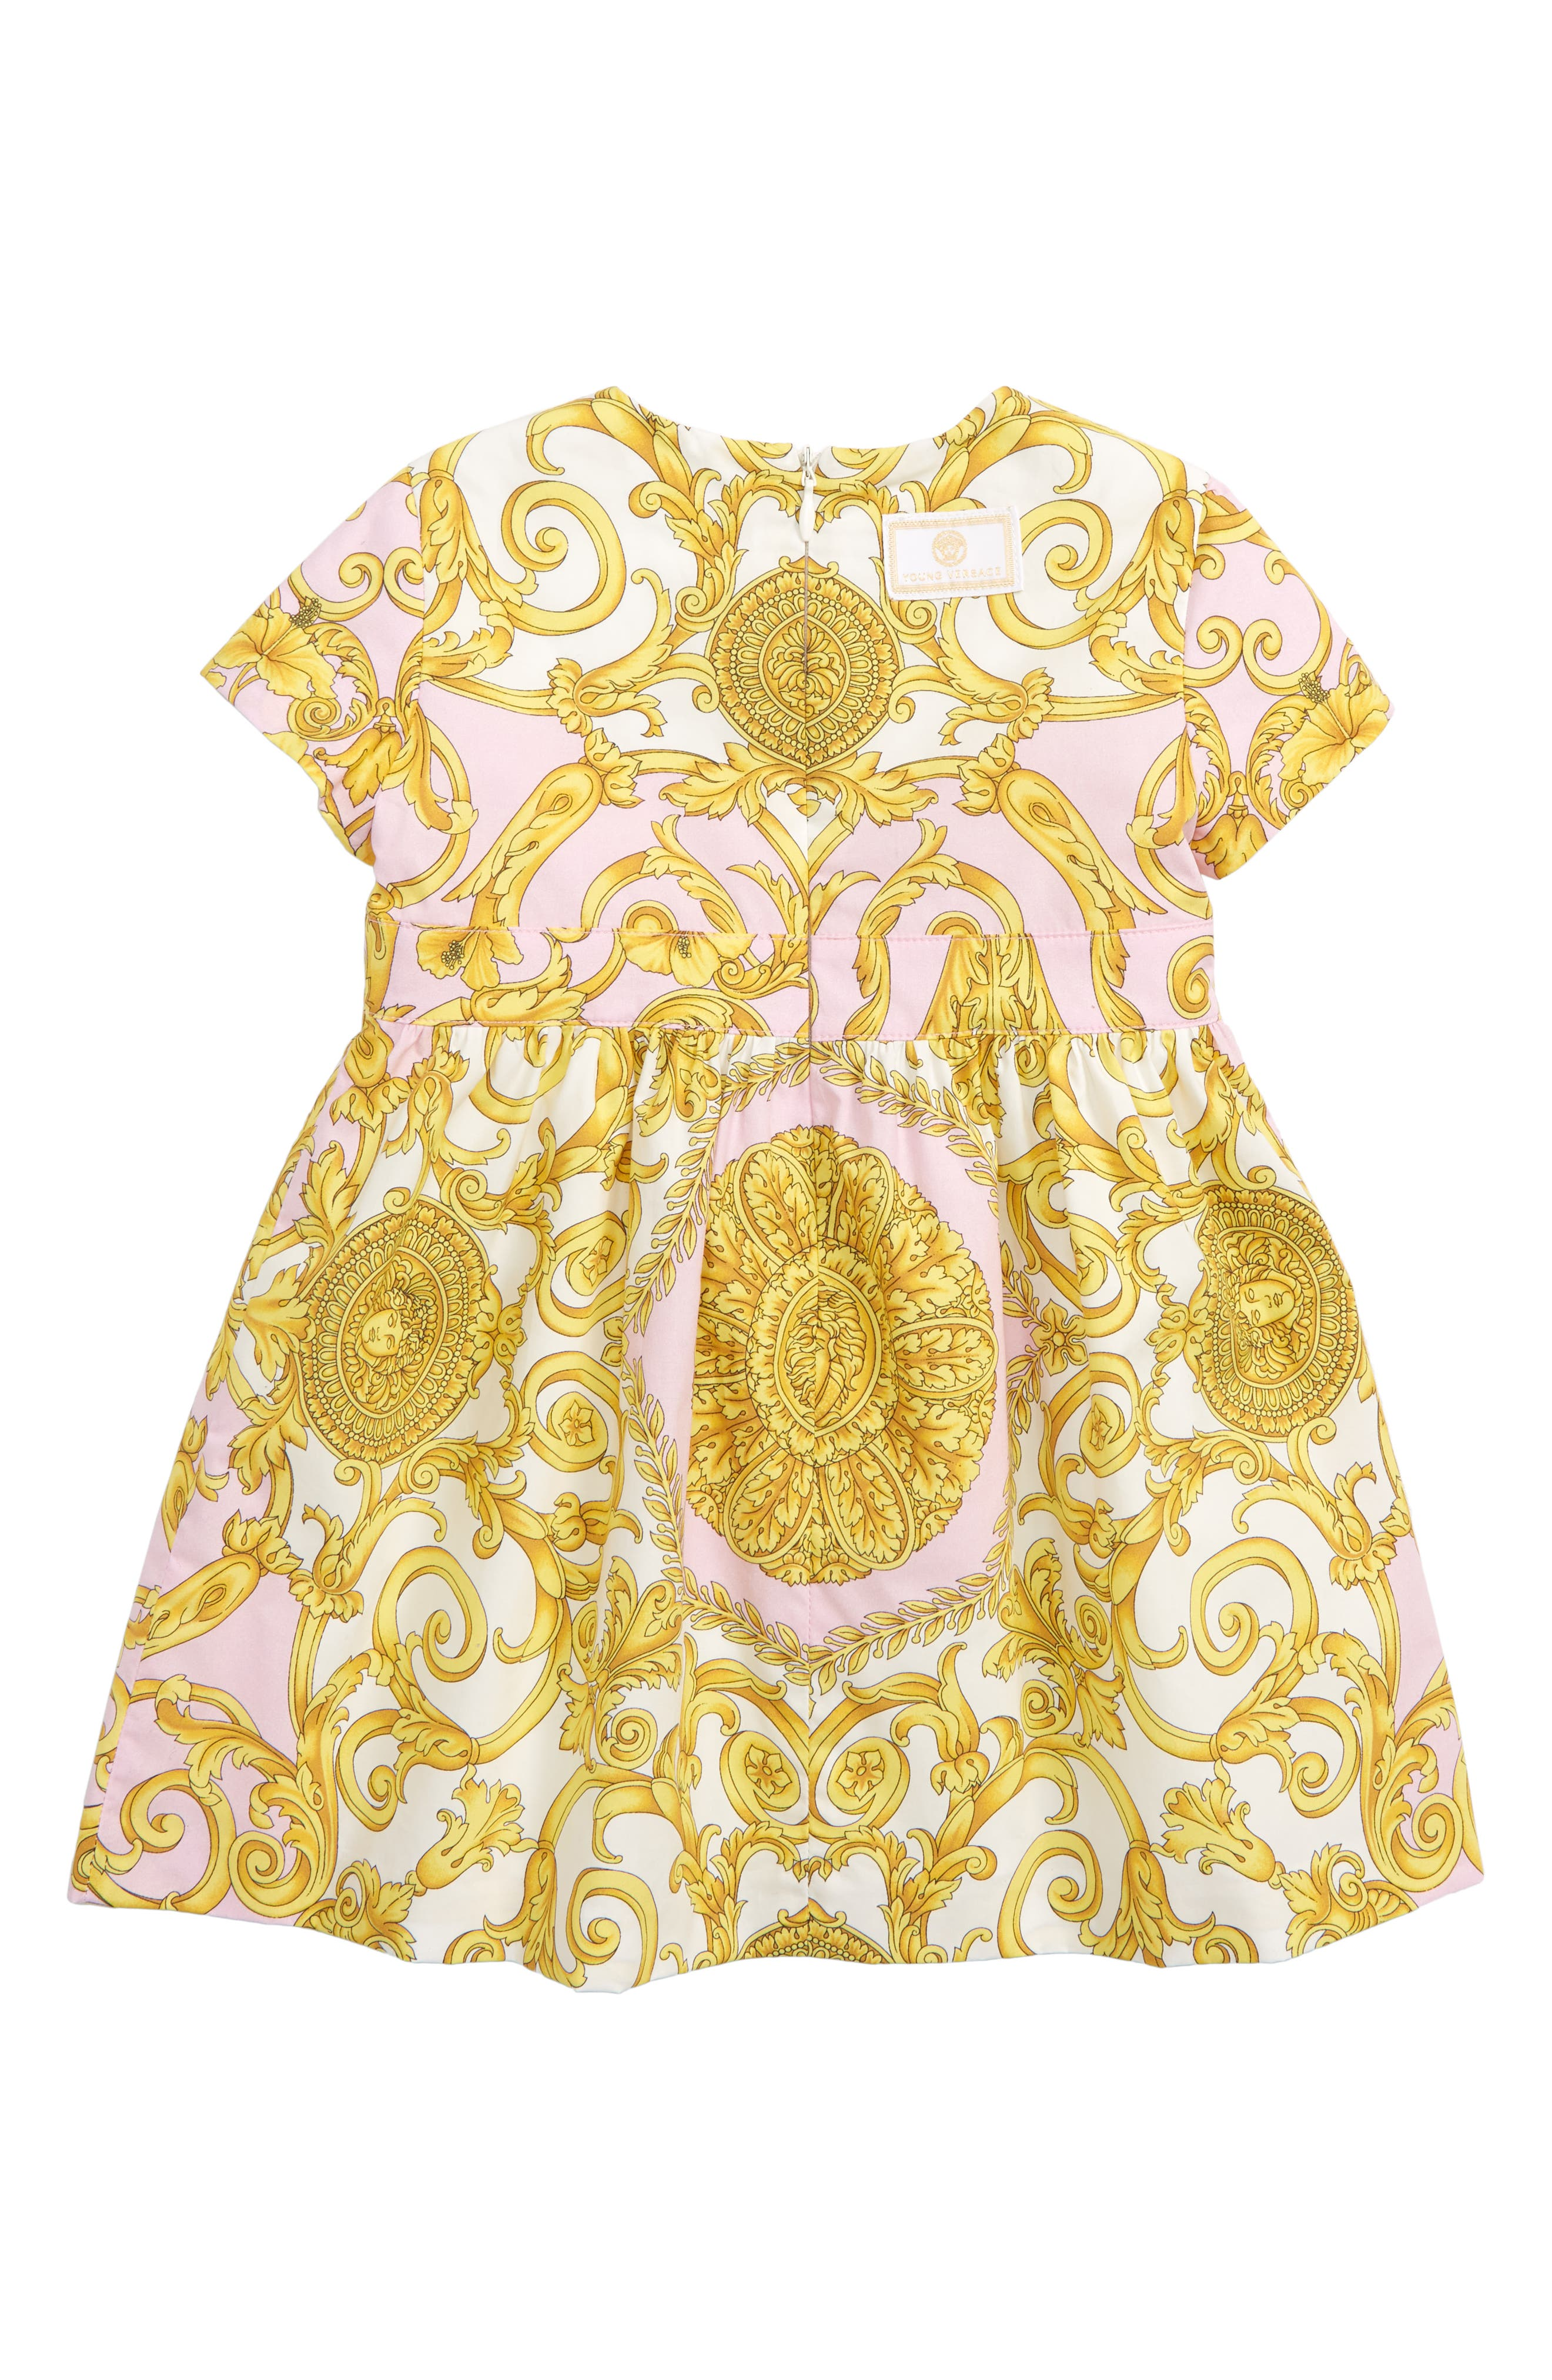 VERSACE, Barocco Print Fit & Flare Dress, Alternate thumbnail 2, color, PINK/ GOLD